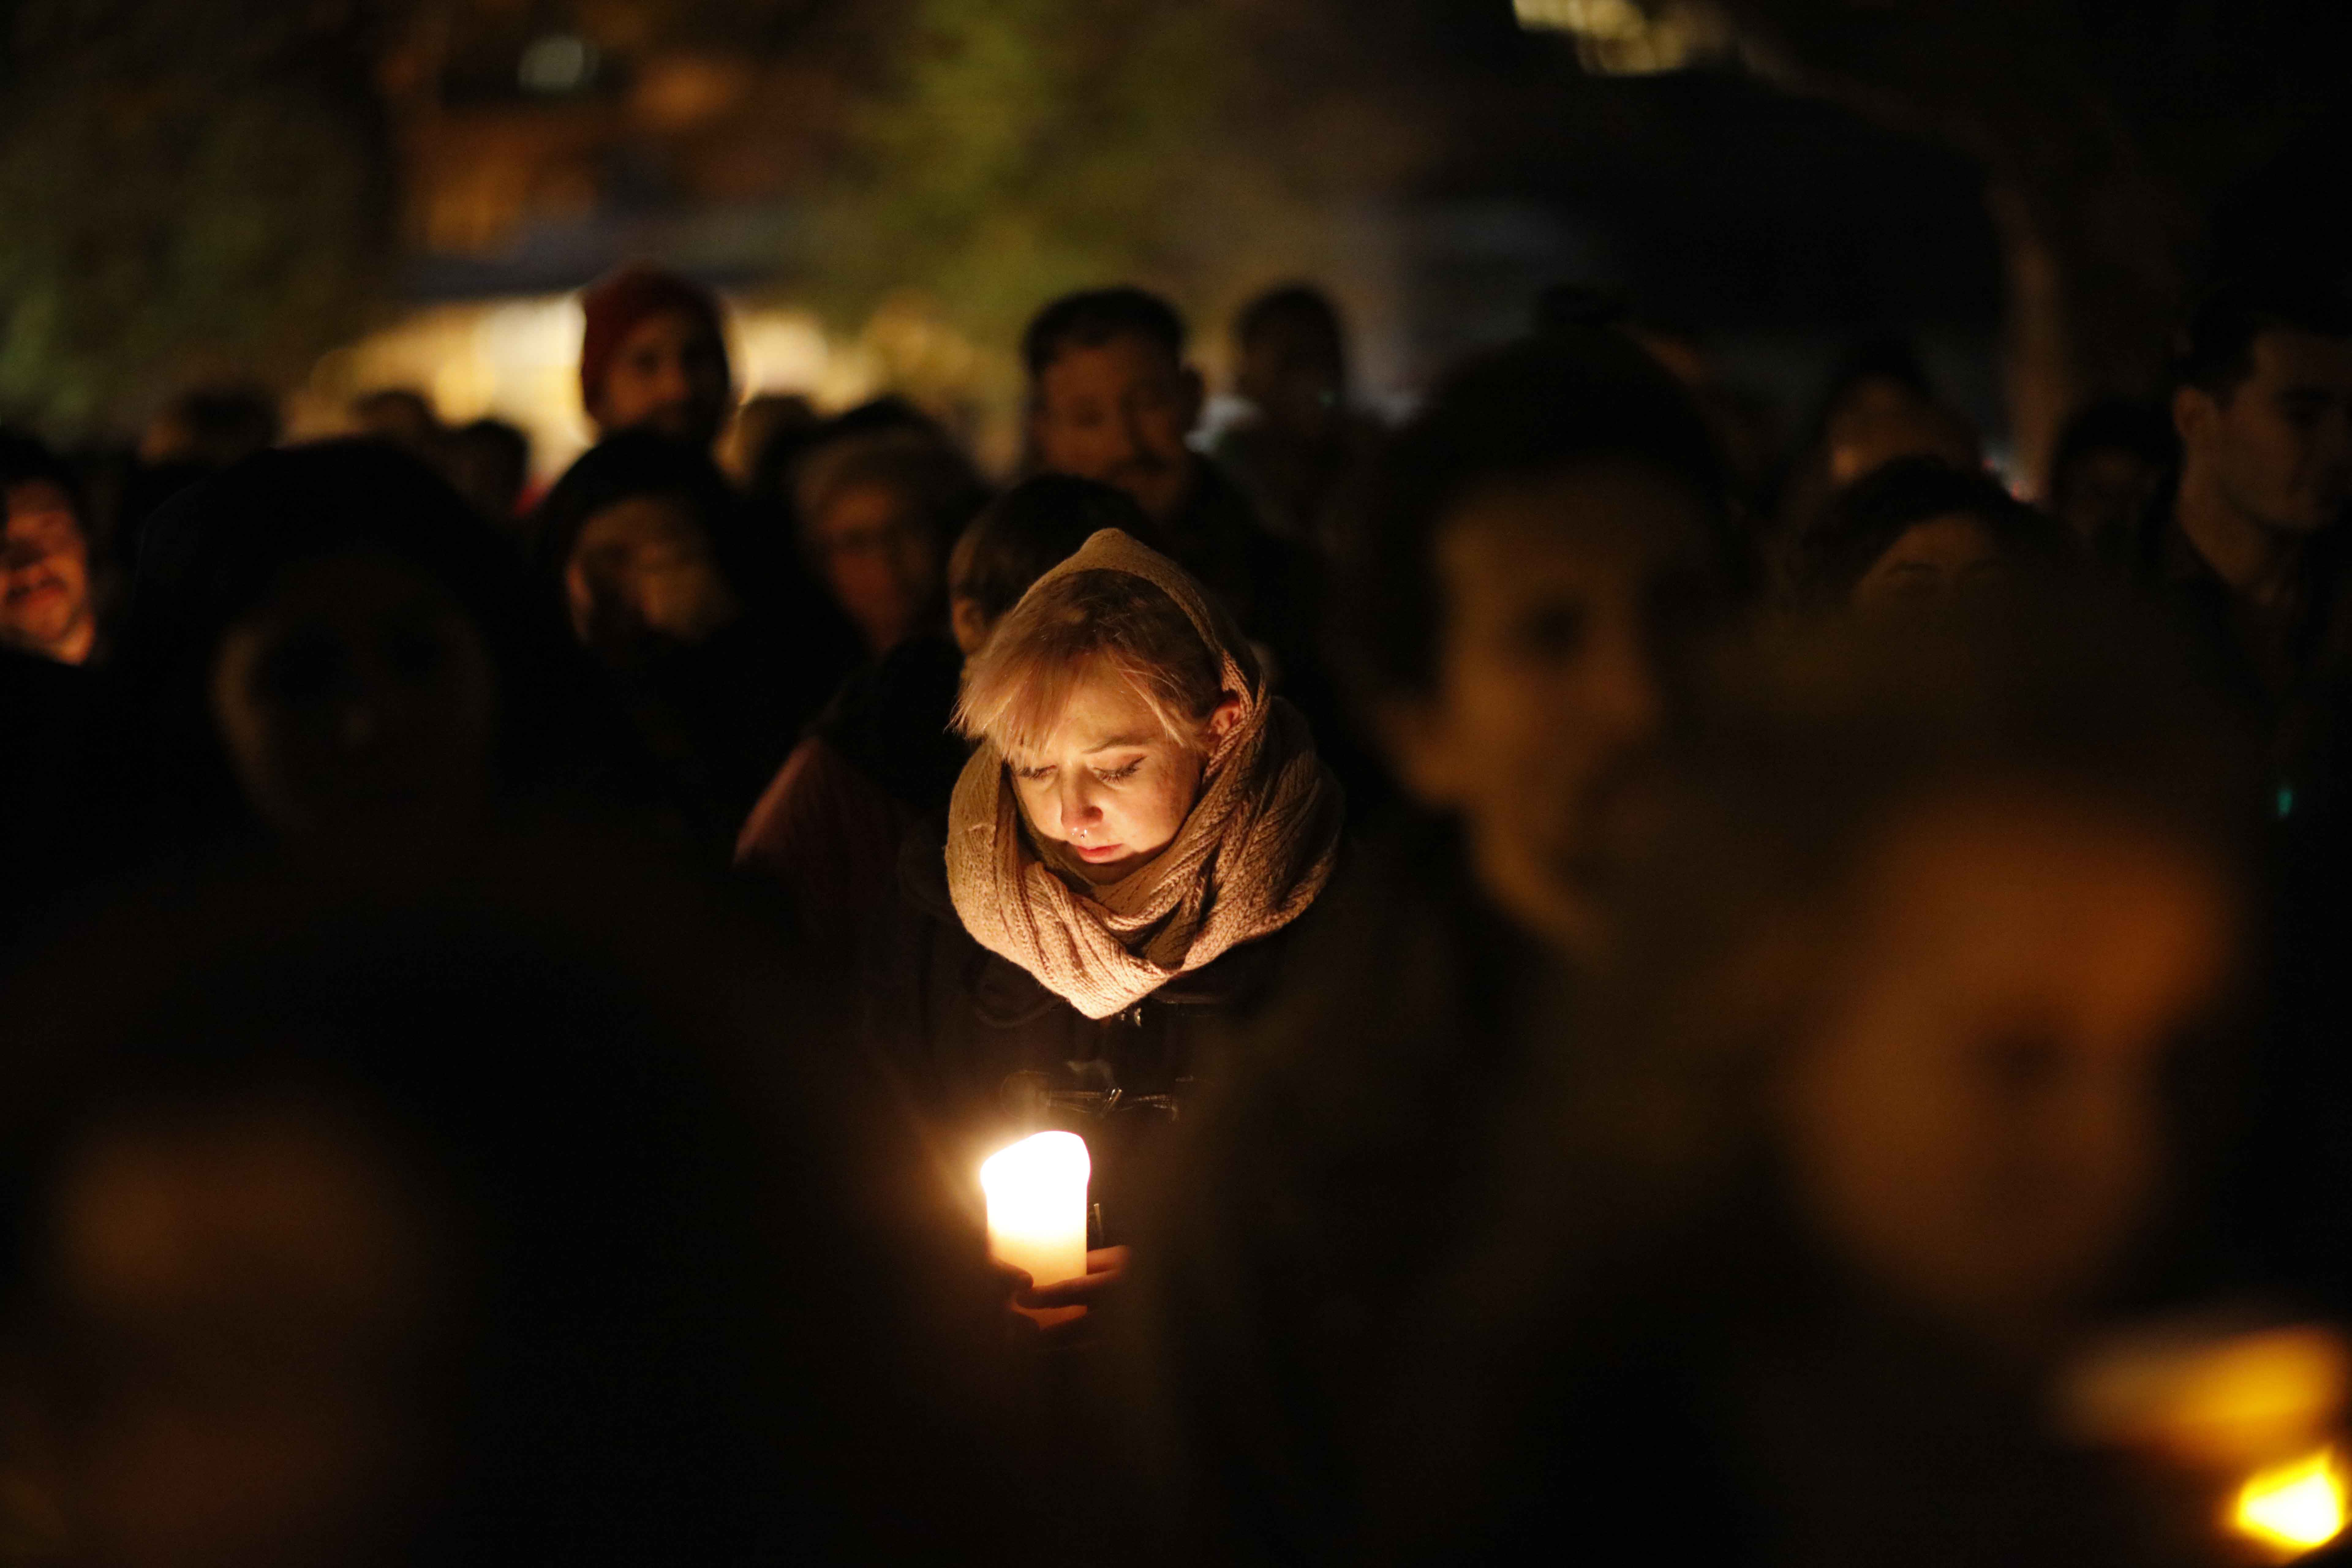 A vigil is held at Lake Merritt for the victims of the